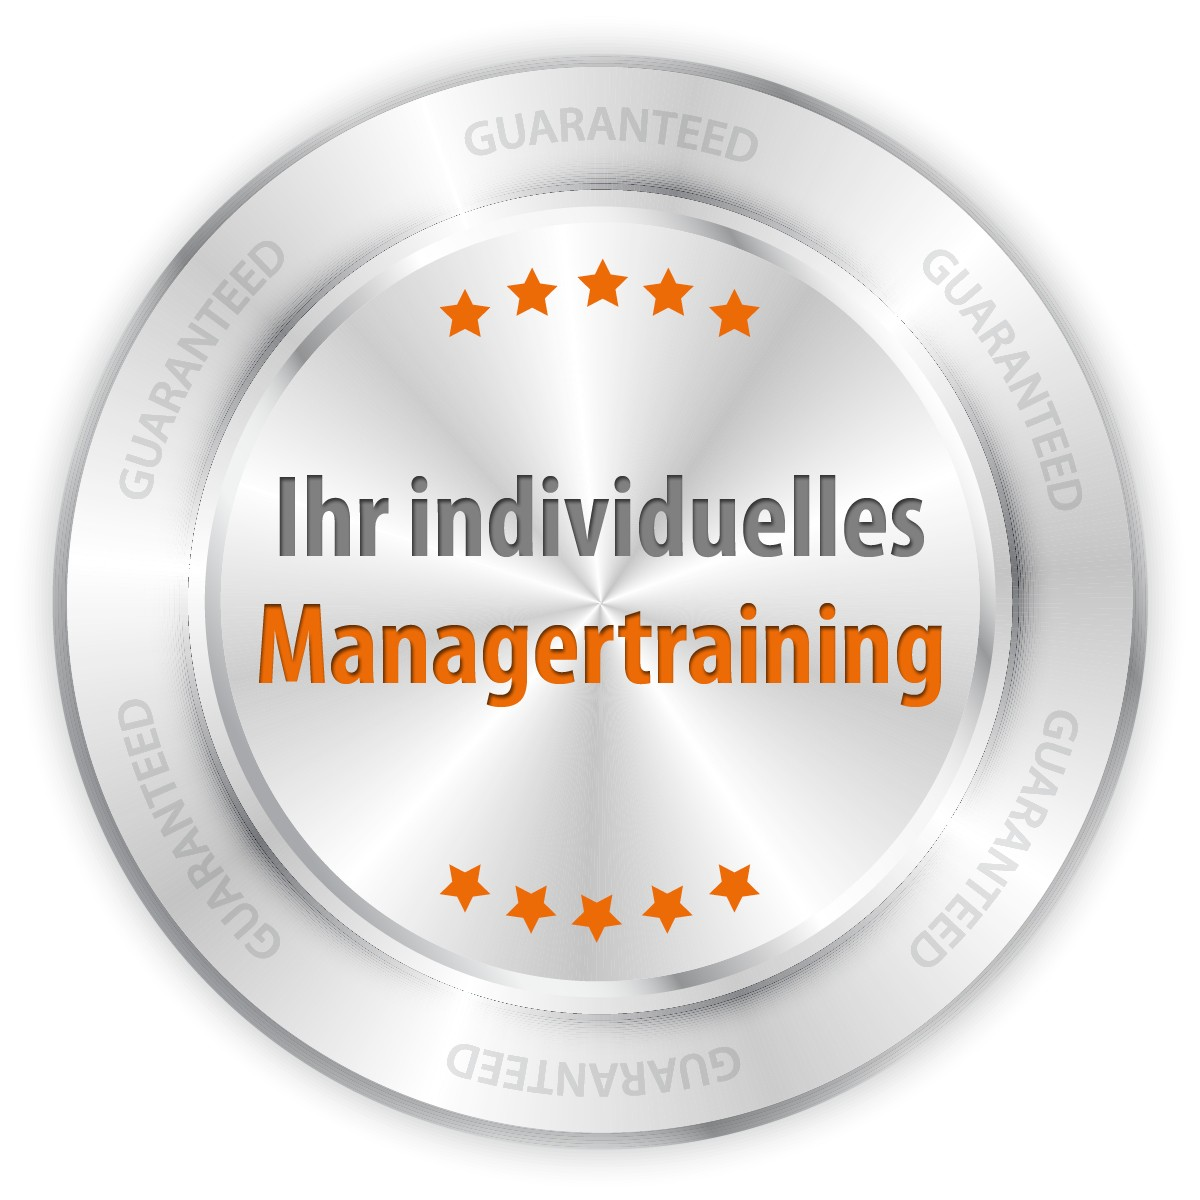 Ihr Individuelles Managertraining